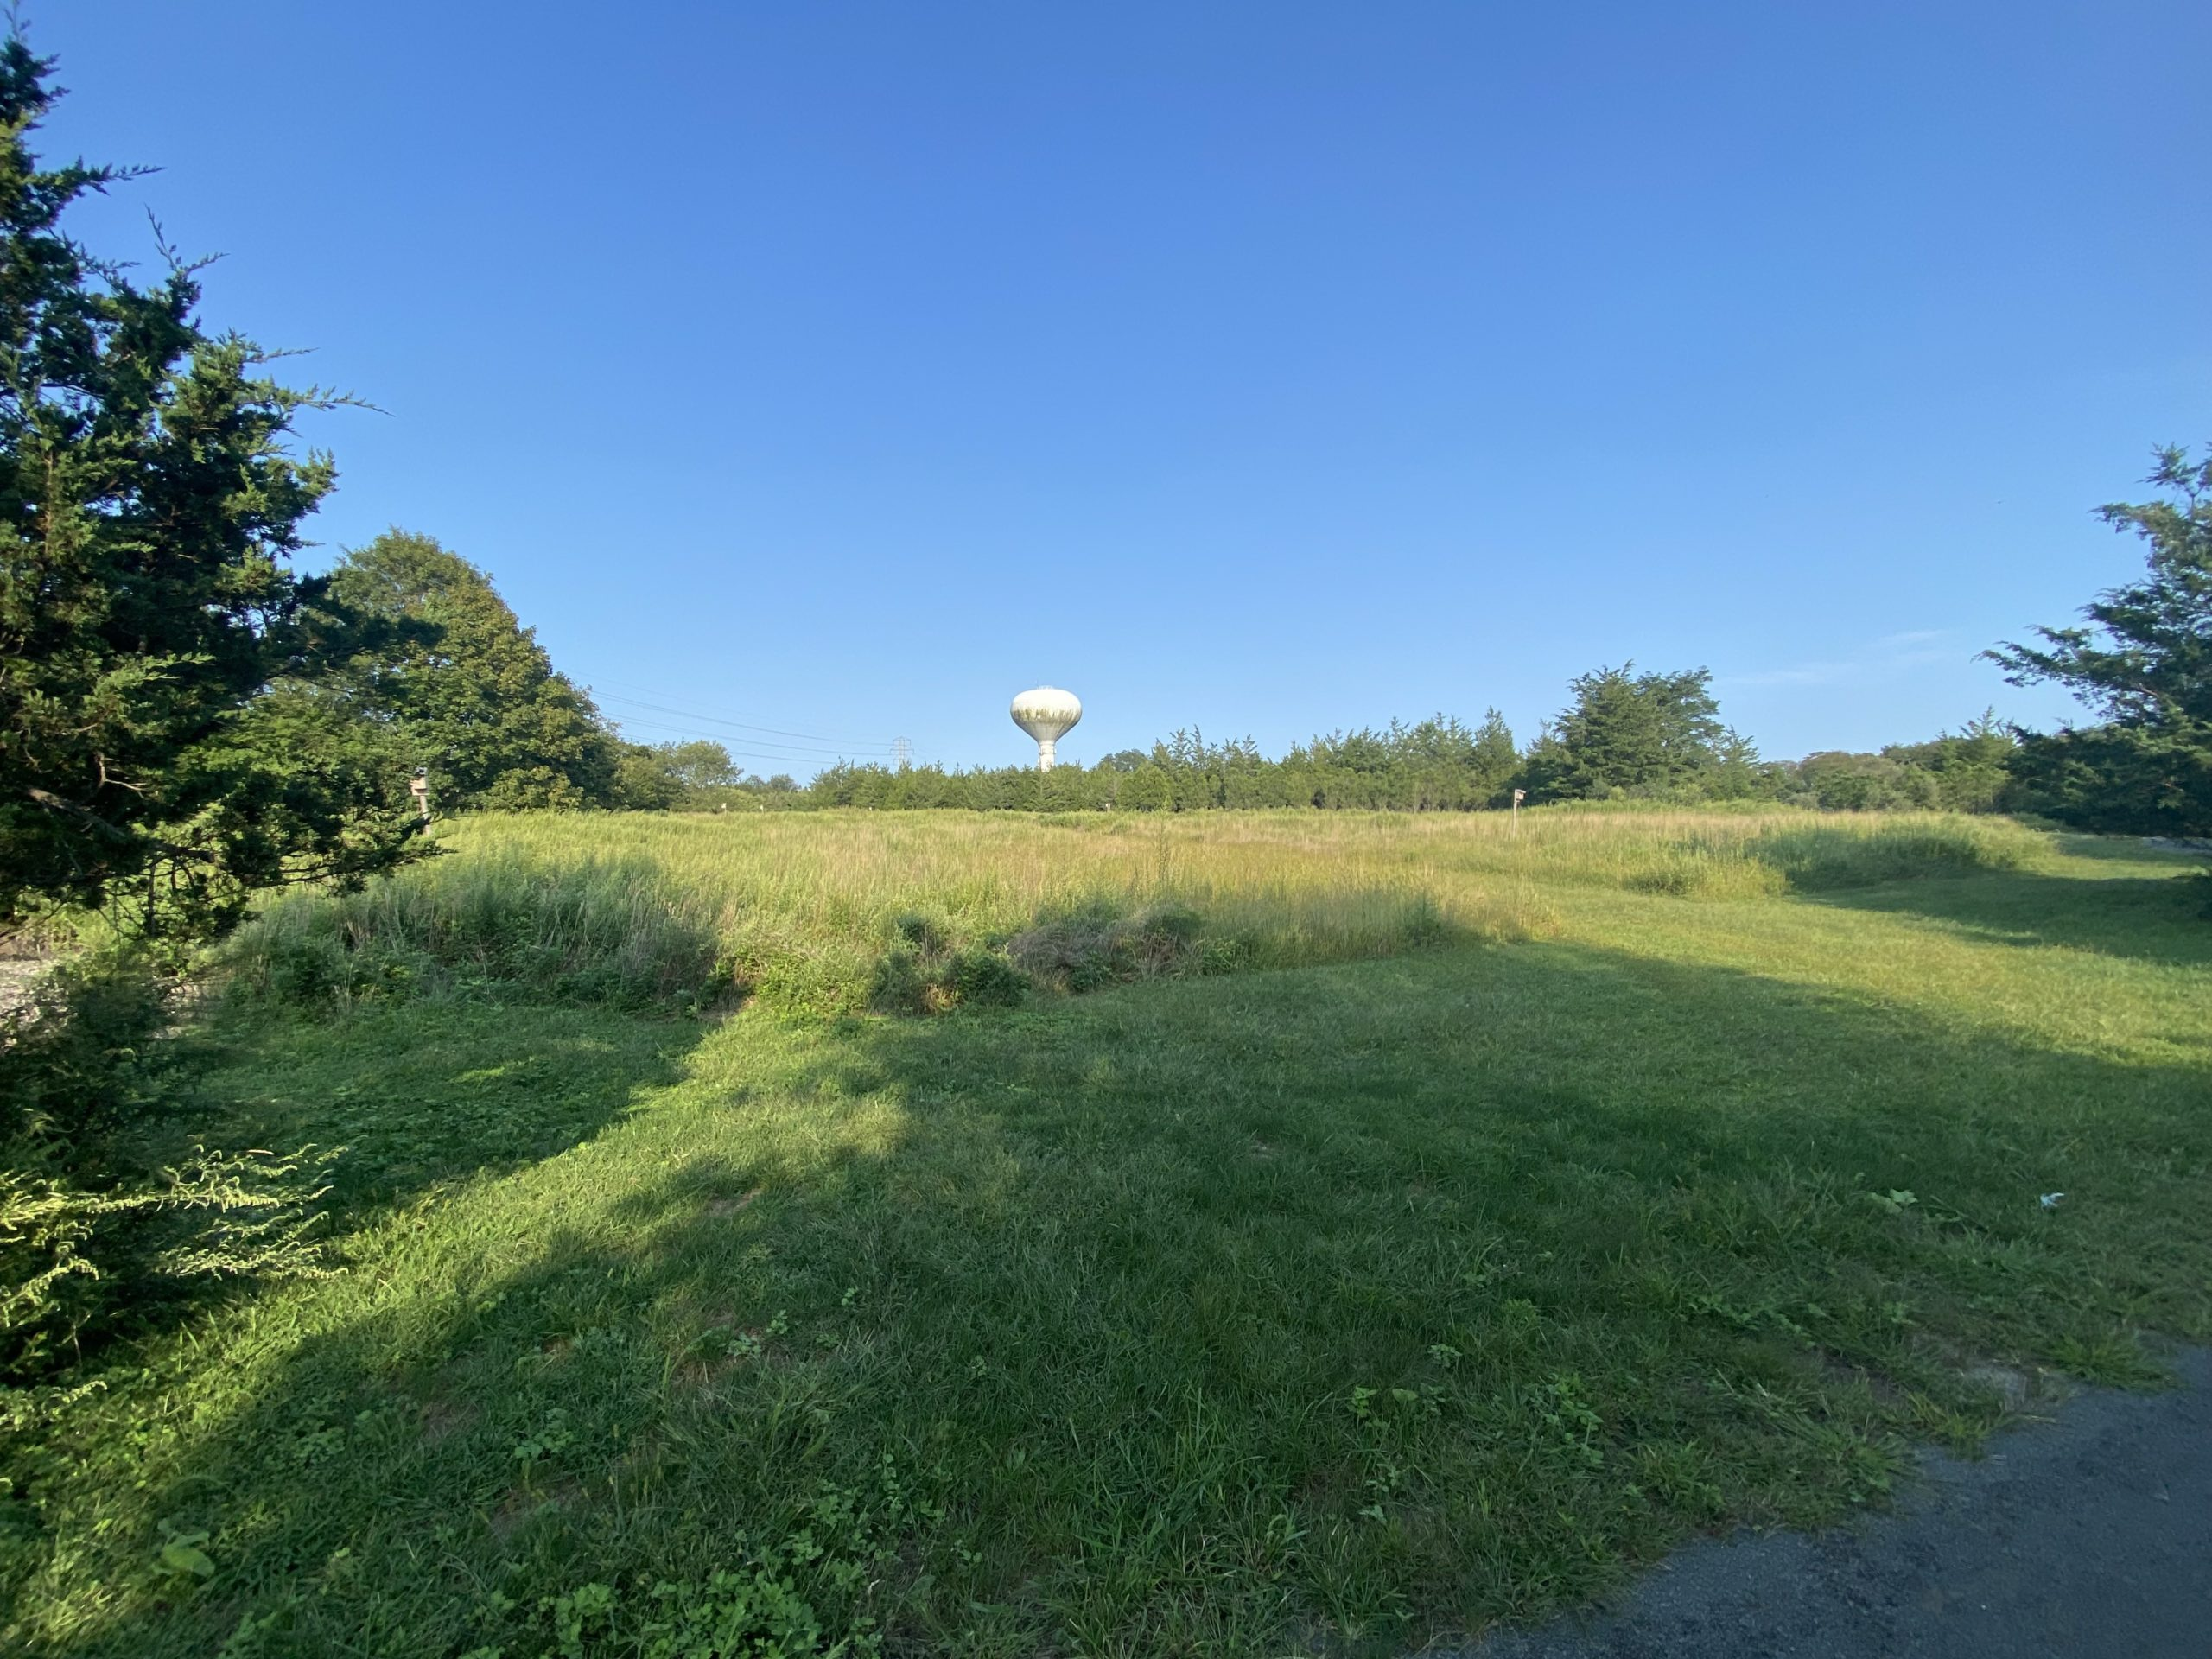 The Community Preservation Fund purchased and preserved the land that would become Moses Park in Southampton Village.